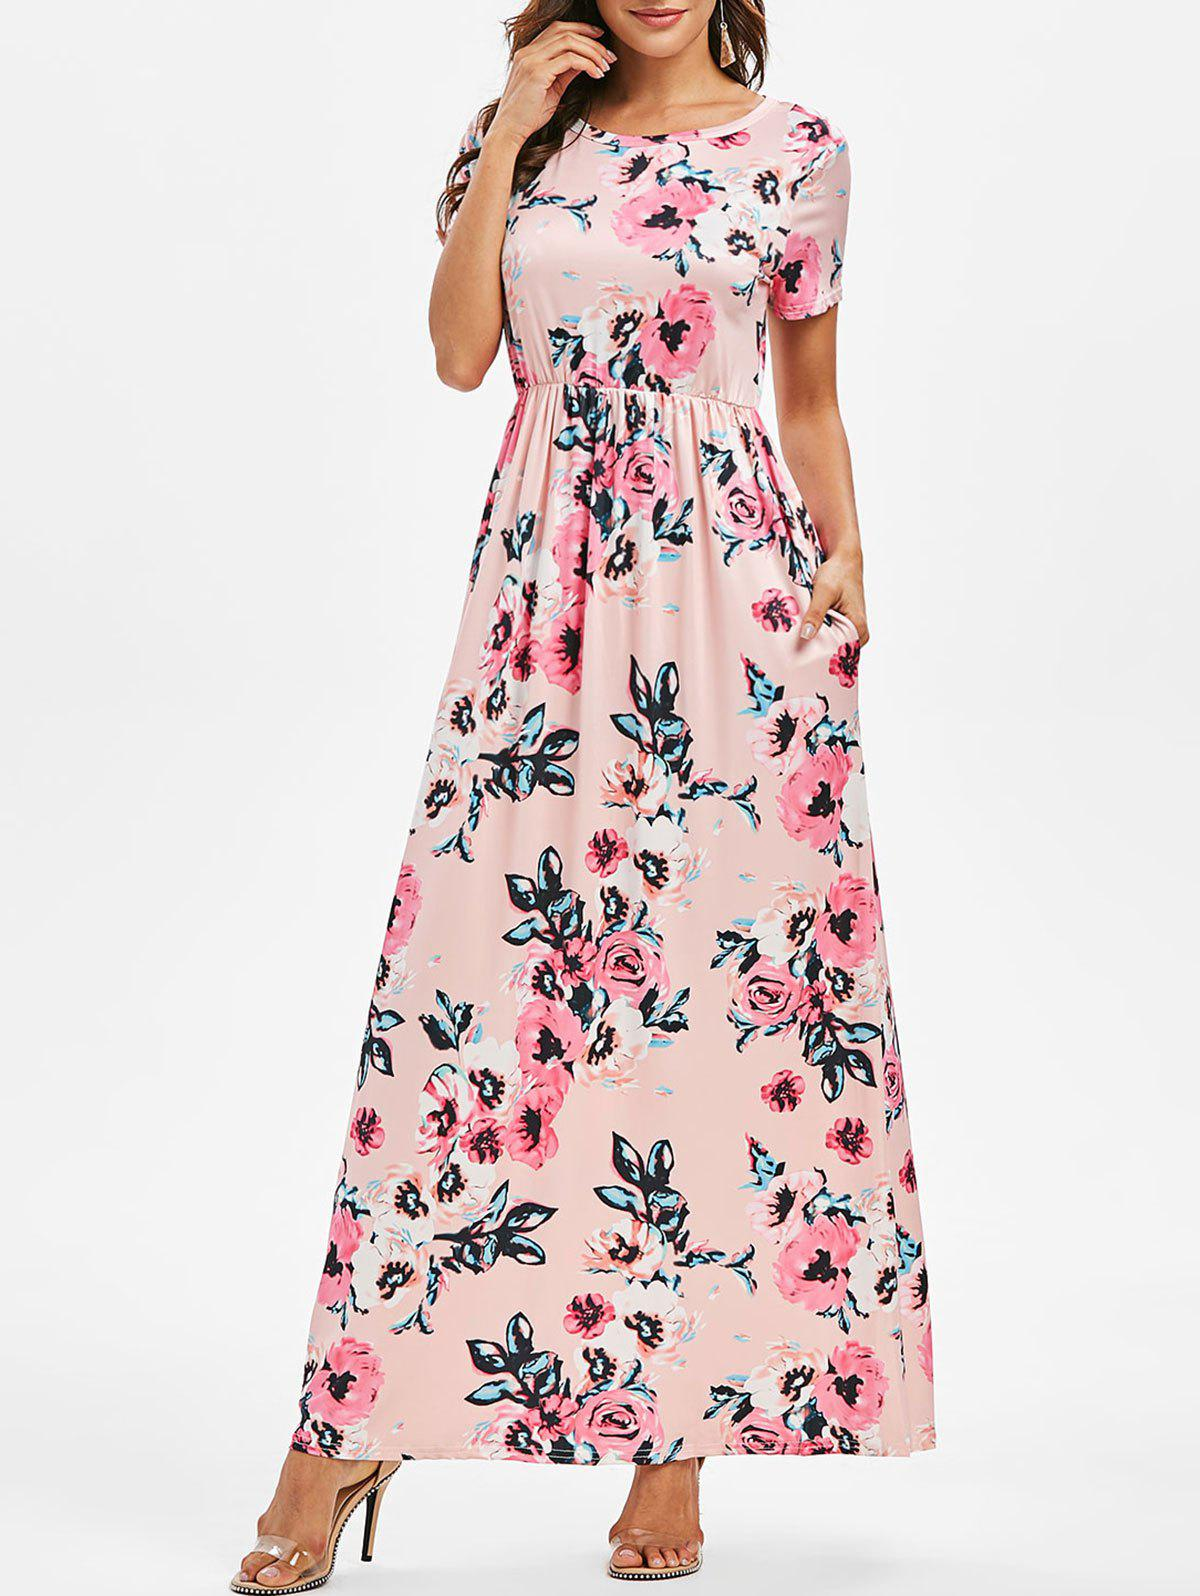 Flower Print Floor Length Casual Dress - PINK XL